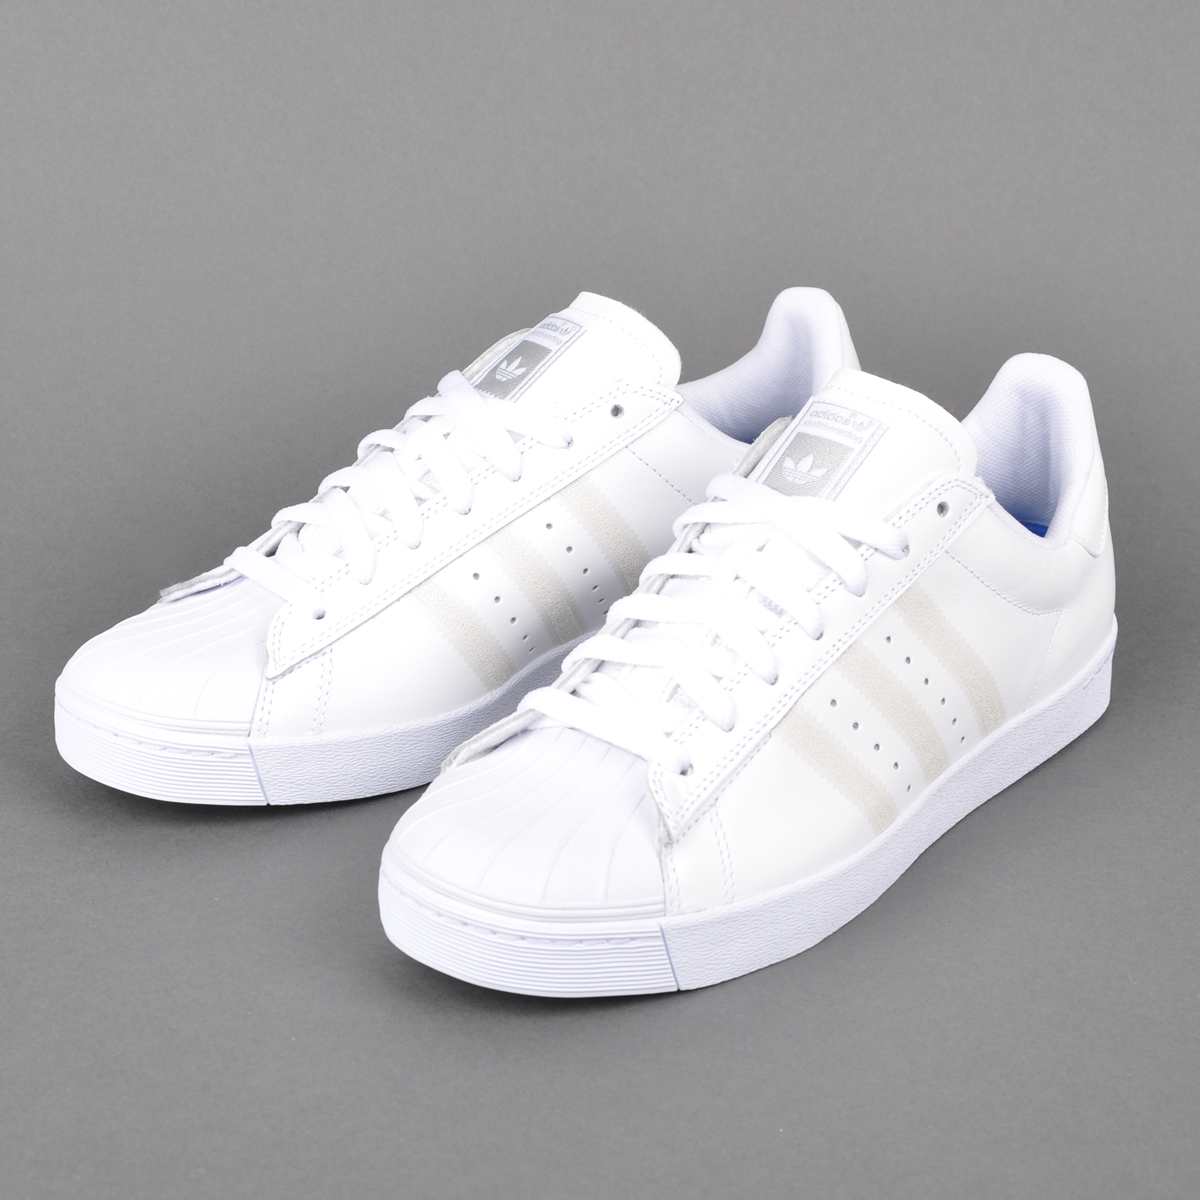 big sale d1f11 68ab4 Buy Cheap Adidas Superstar Vulc ADV Shoes Sale Online 2018